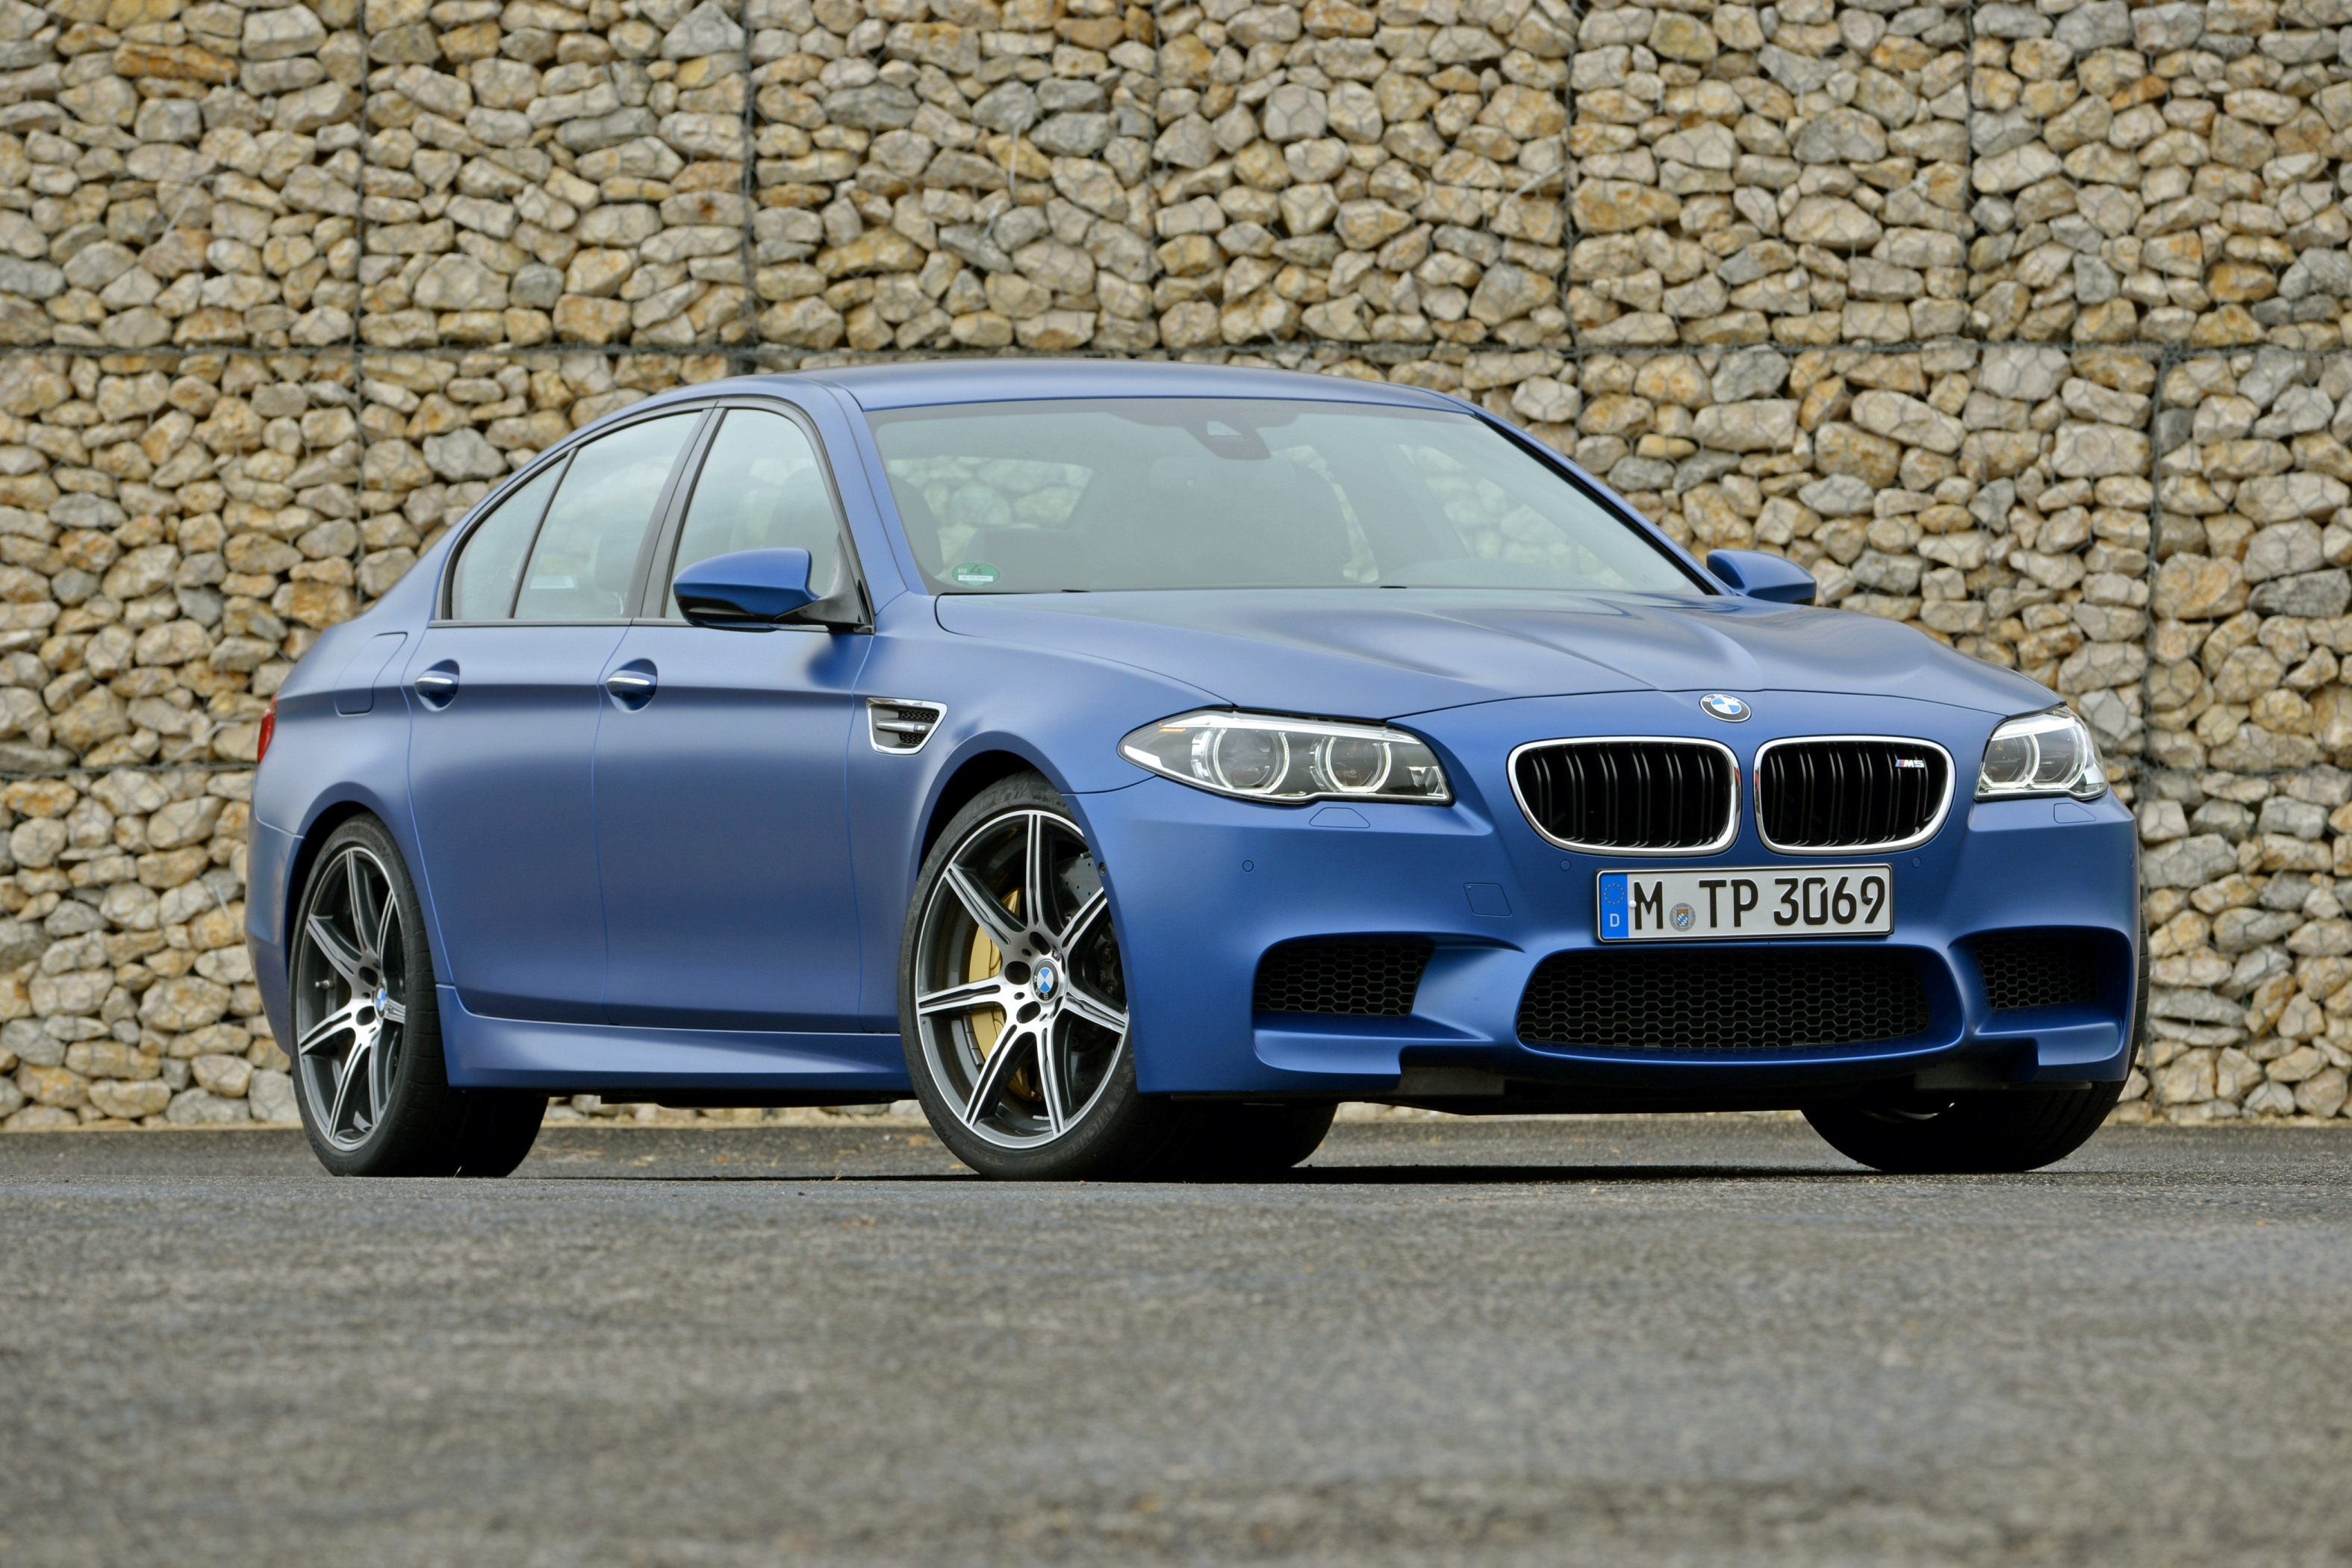 BMW M5 facelift launched at Rs. 1.35 crore